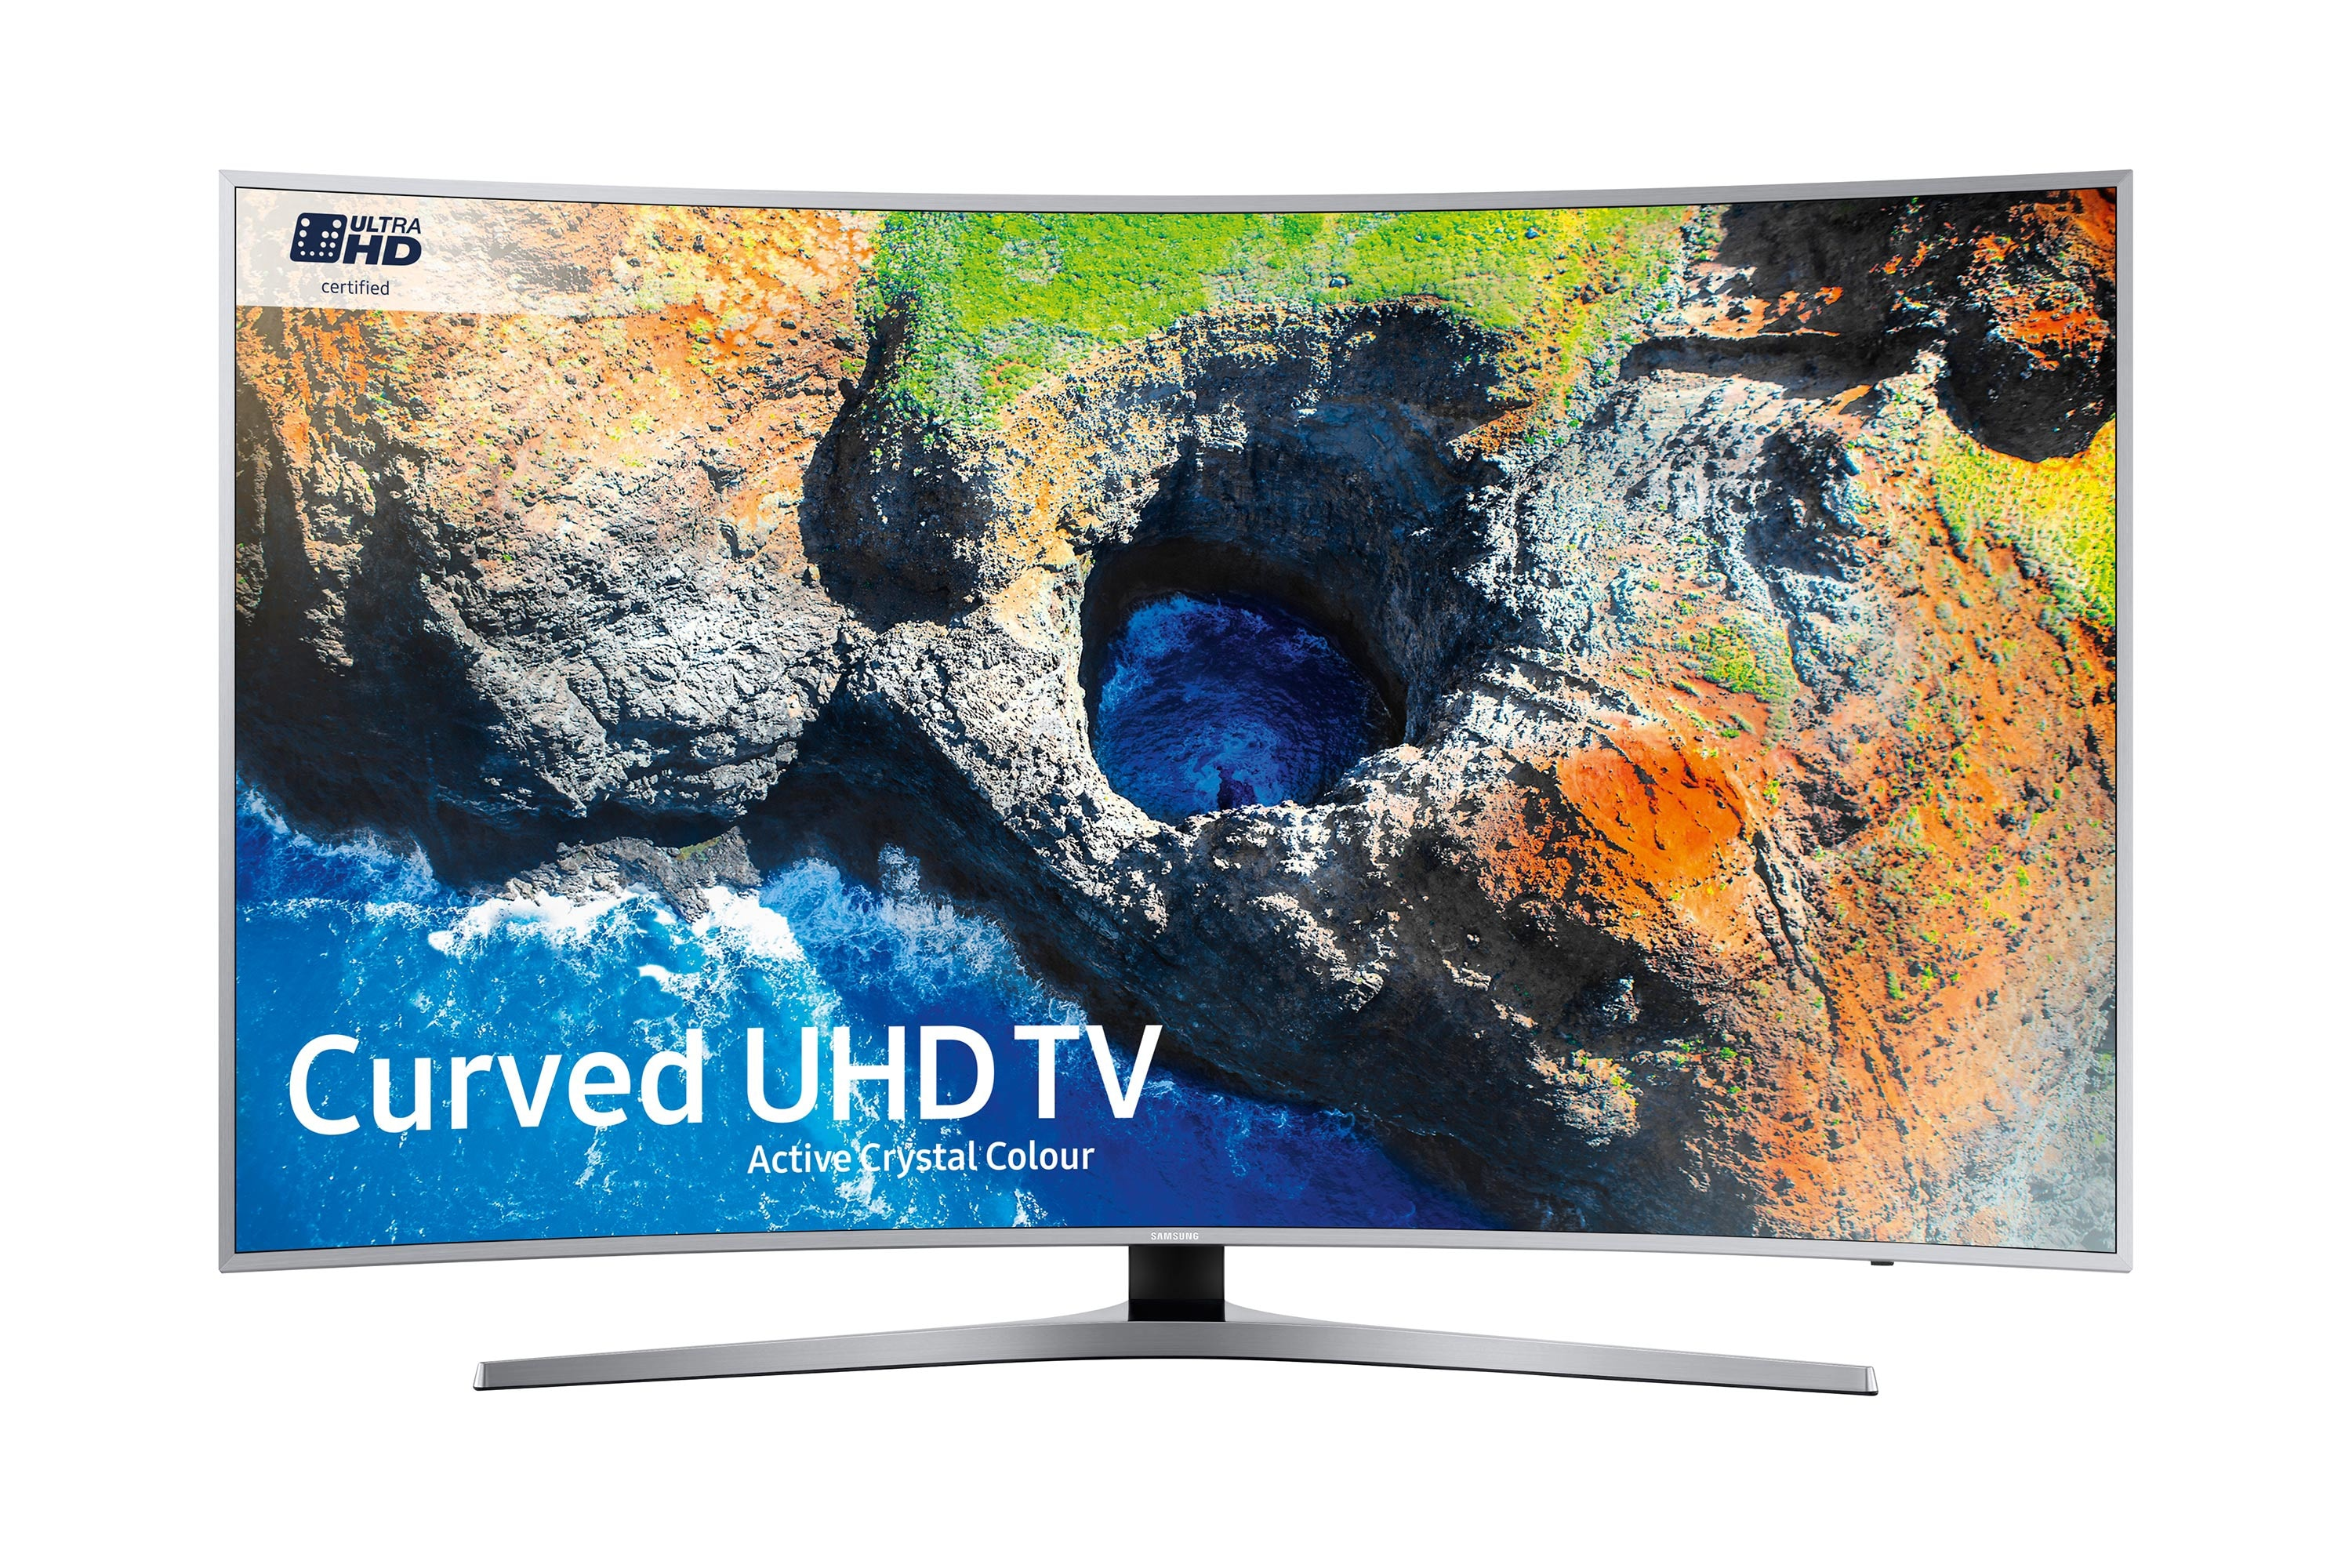 49'' MU6500 Curved Active Crystal Colour Ultra HD HDR Smart TV